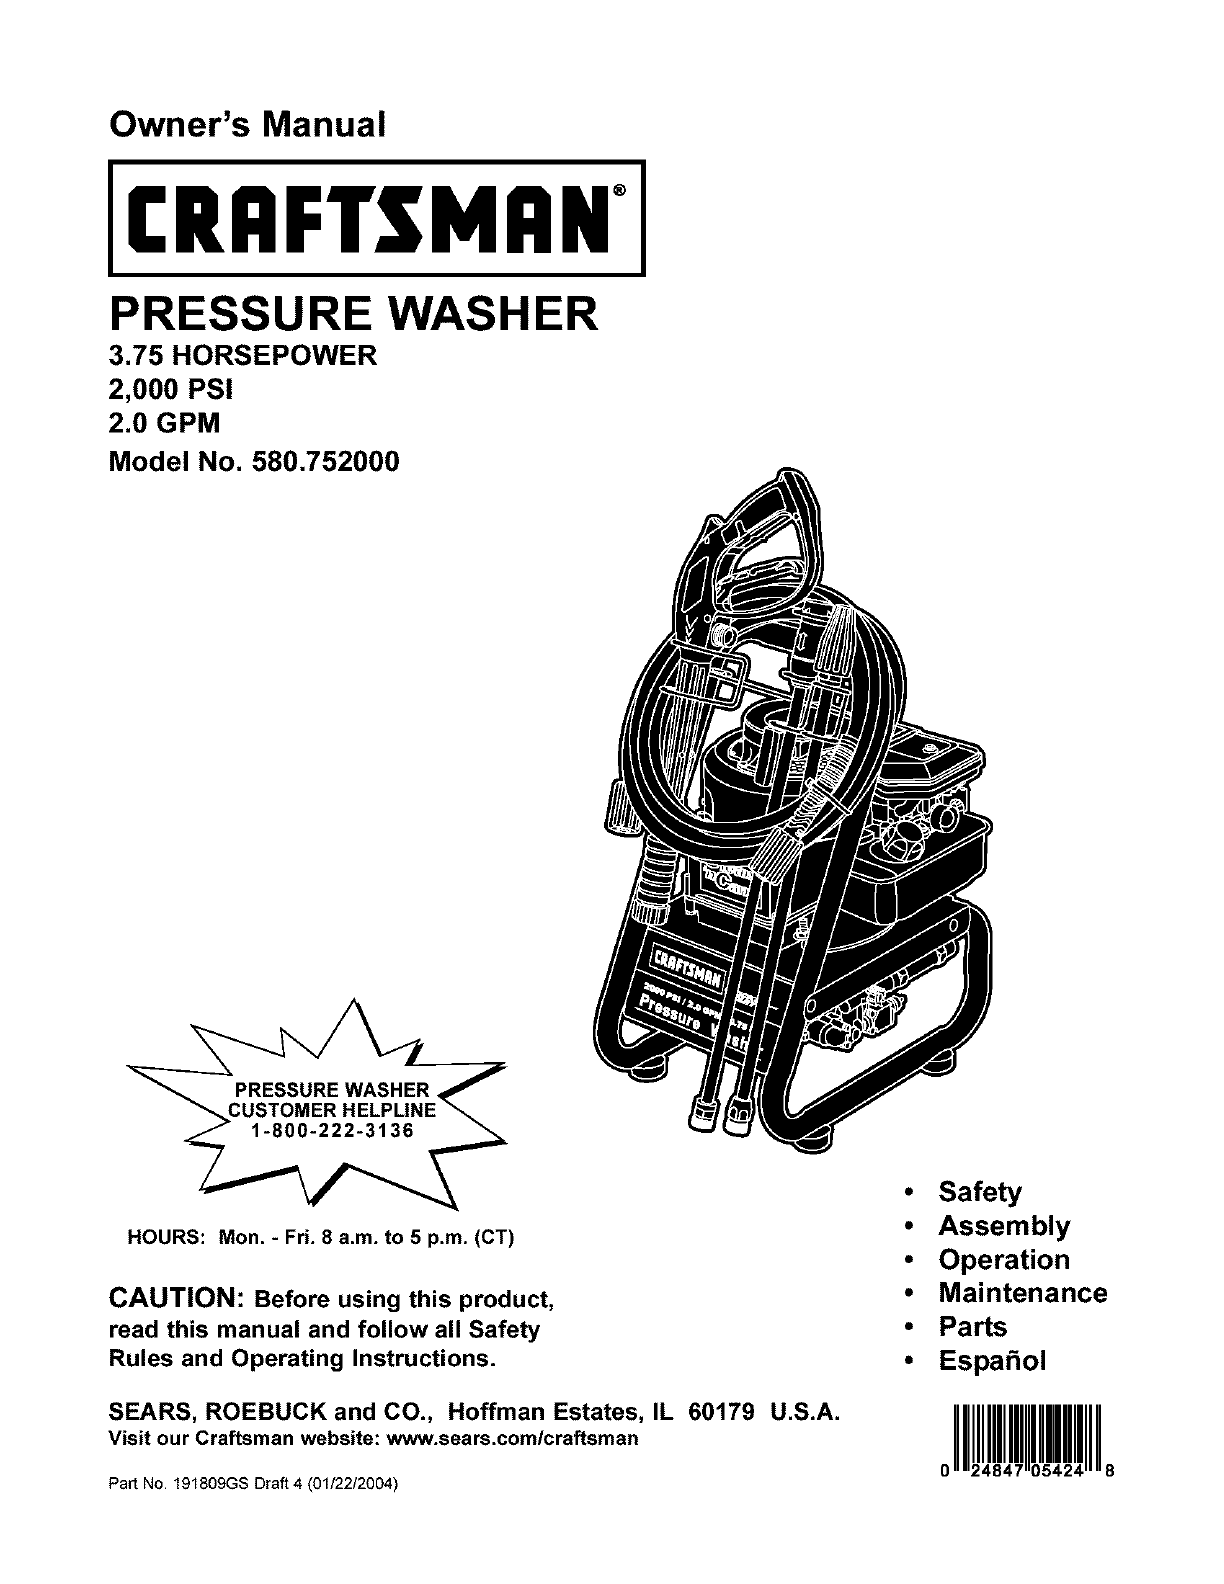 Greenworks 2000 Psi Pressure Washer Replacement Parts Manual Guide